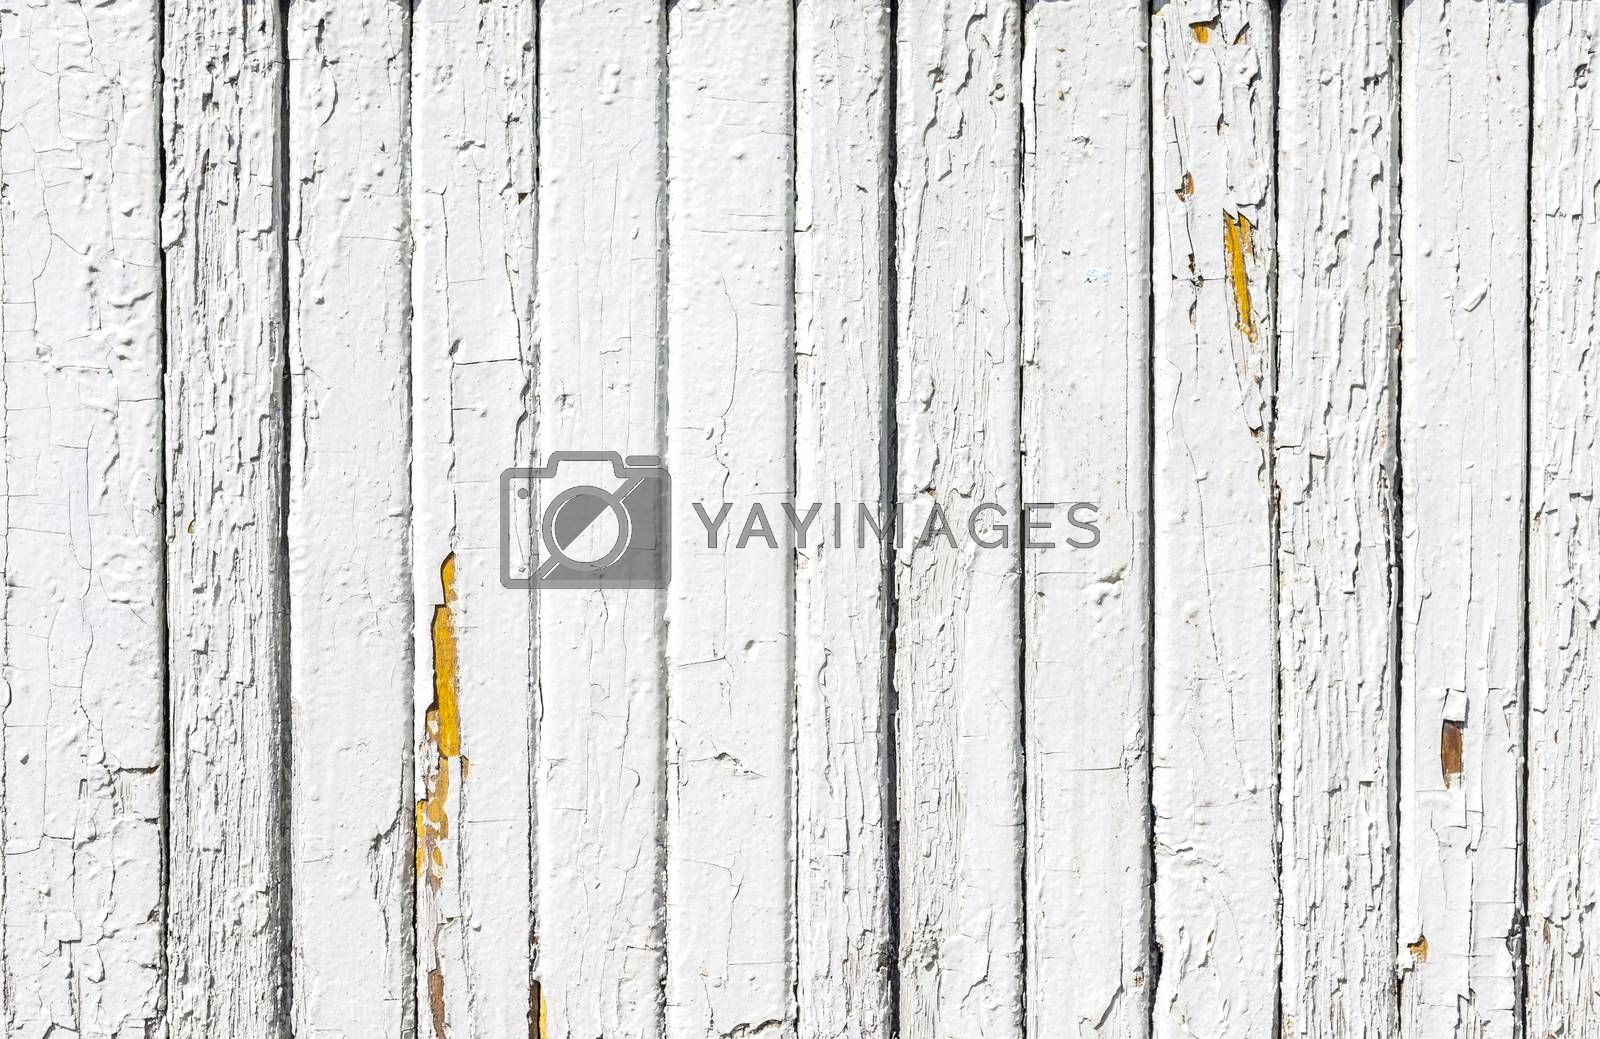 Royalty free image of Vintage  White  Wood Wall by H2Oshka